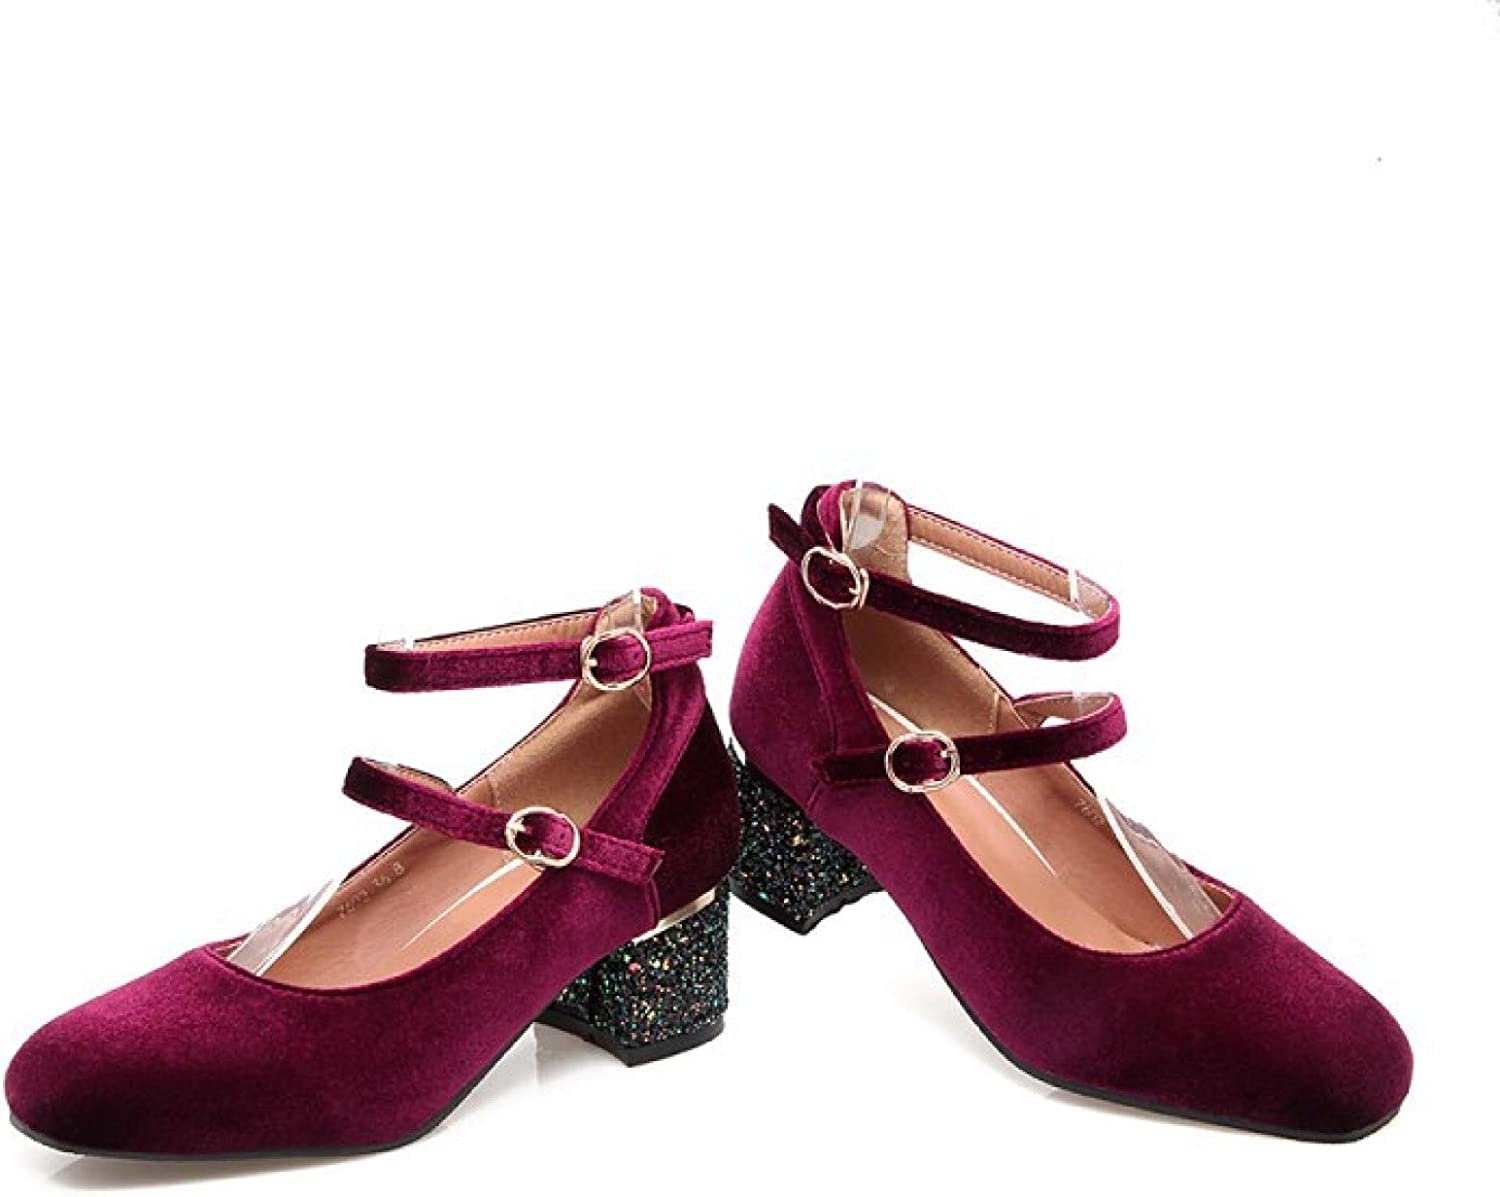 Women's Square Toe Max 74% OFF Velvet Mary Direct sale of manufacturer Jane Sh Vintage Shoes Ankle Strap